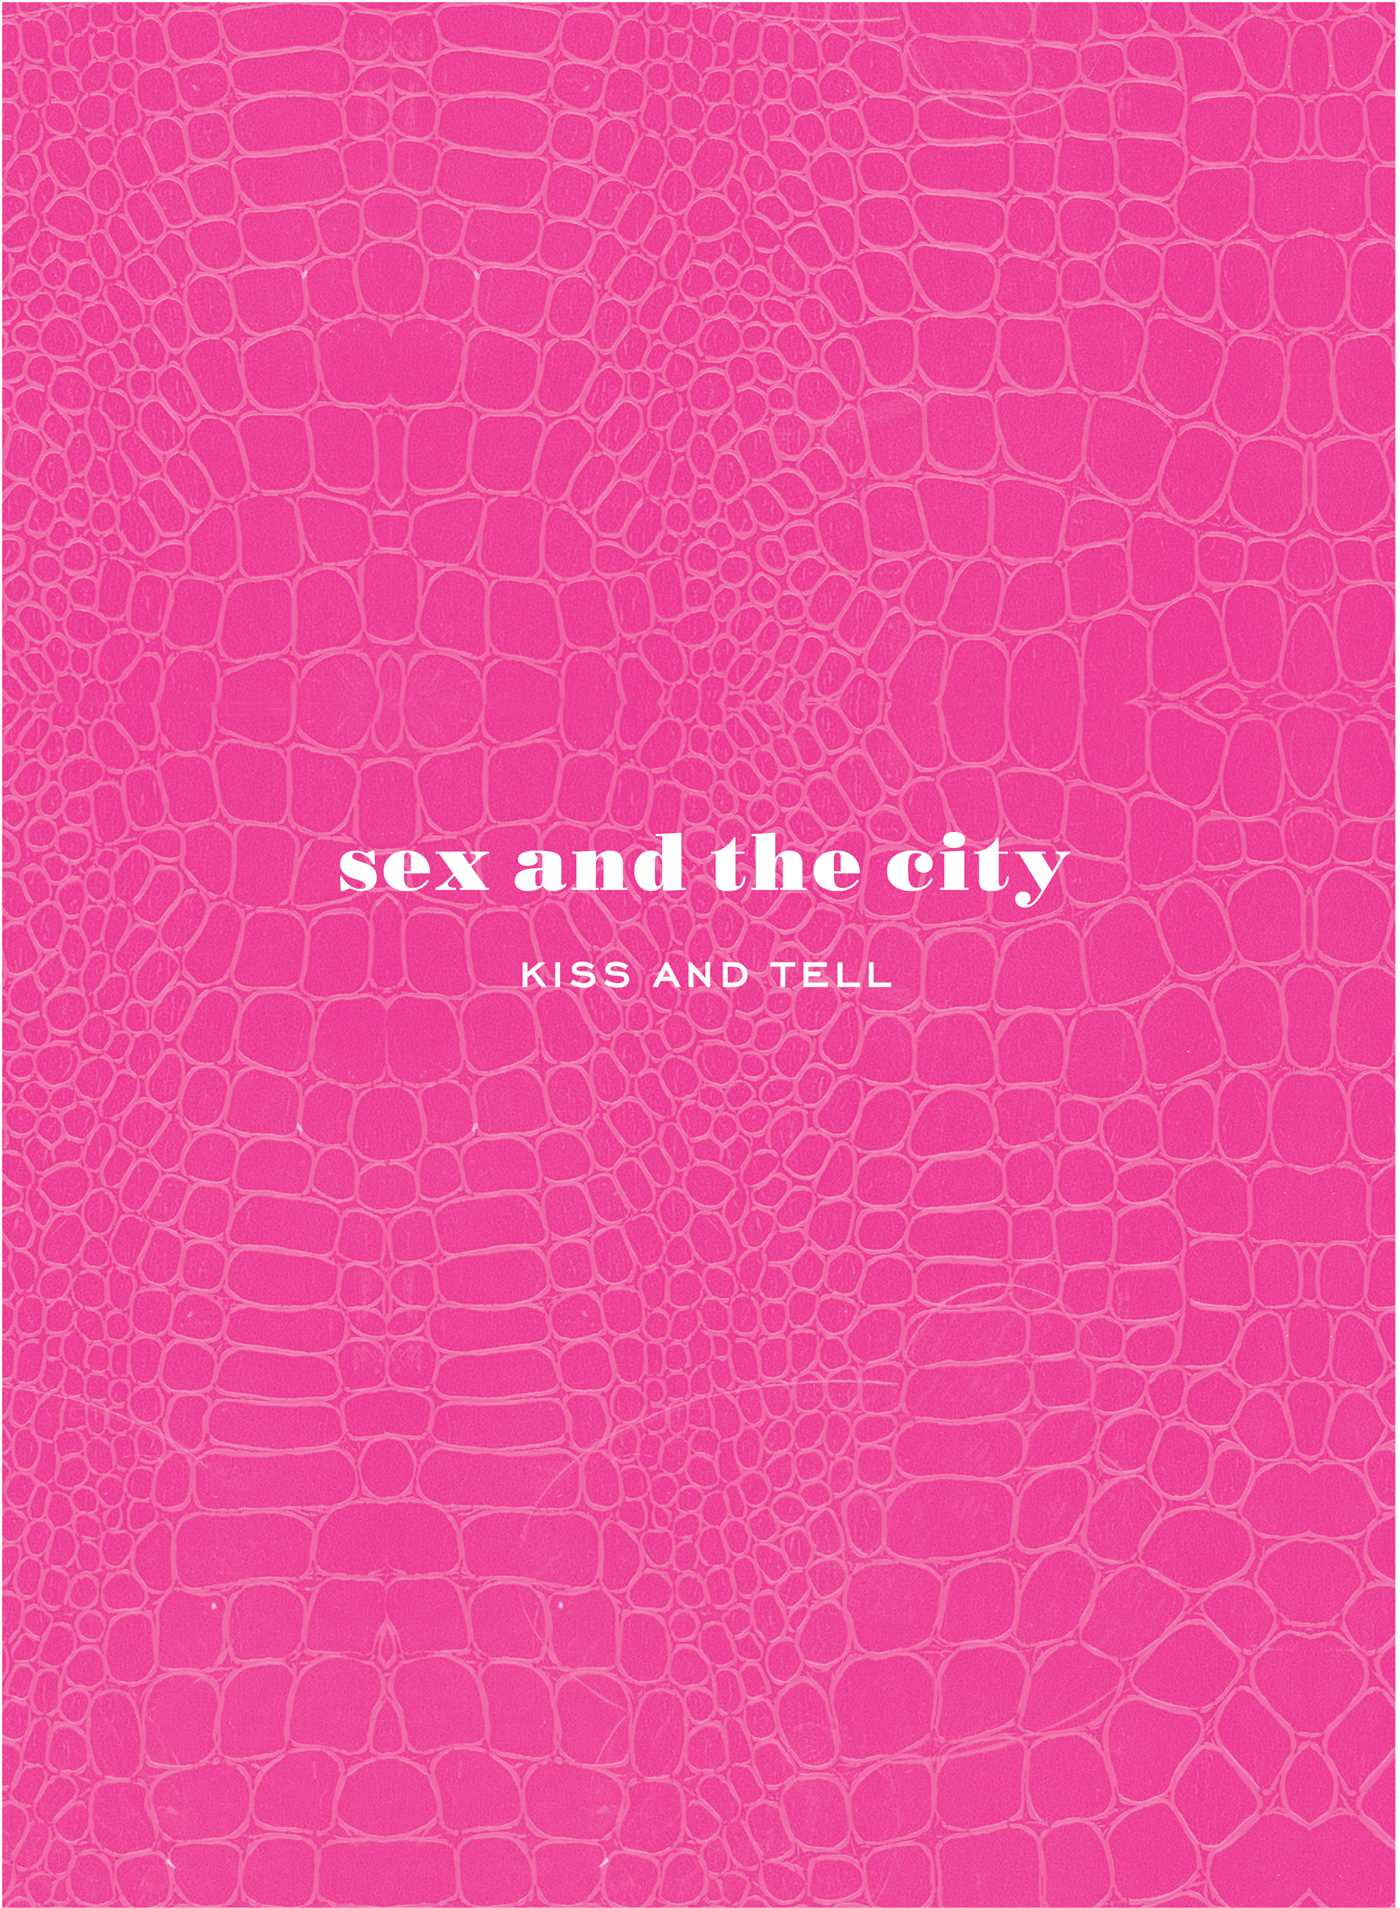 Sex and the city 9781439103722 hr